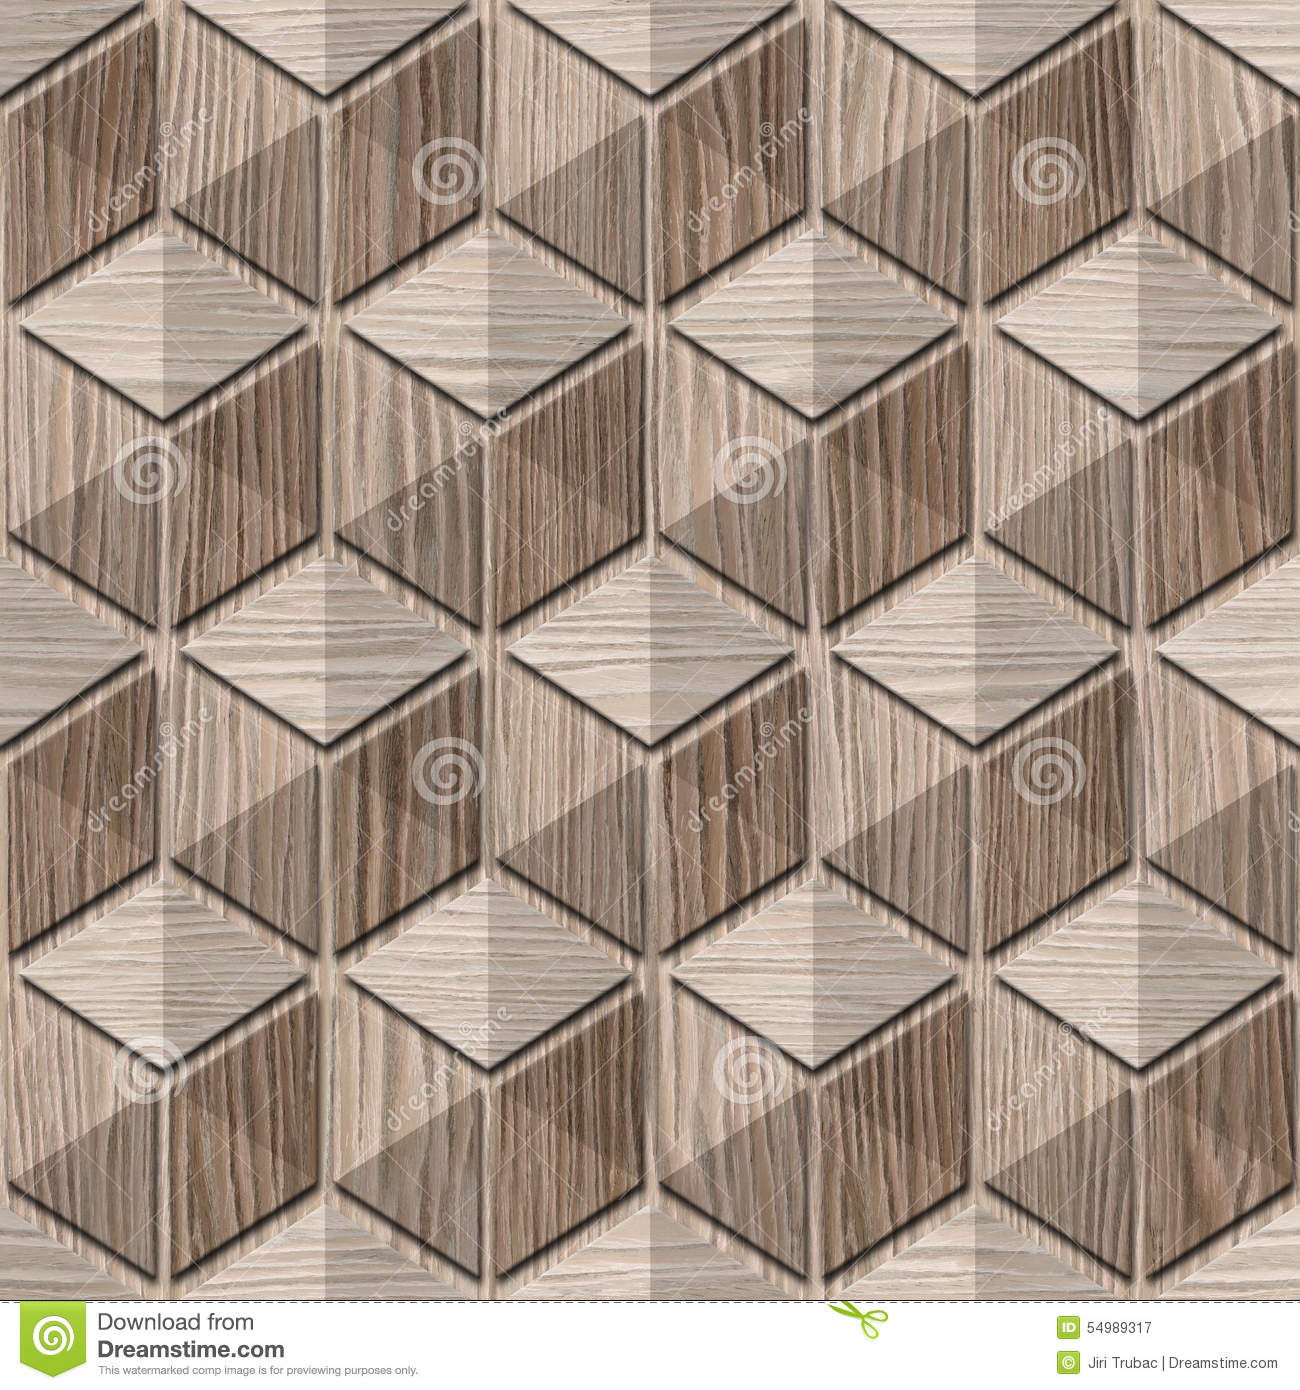 Abstract checkered pattern - seamless background - Blasted Oak